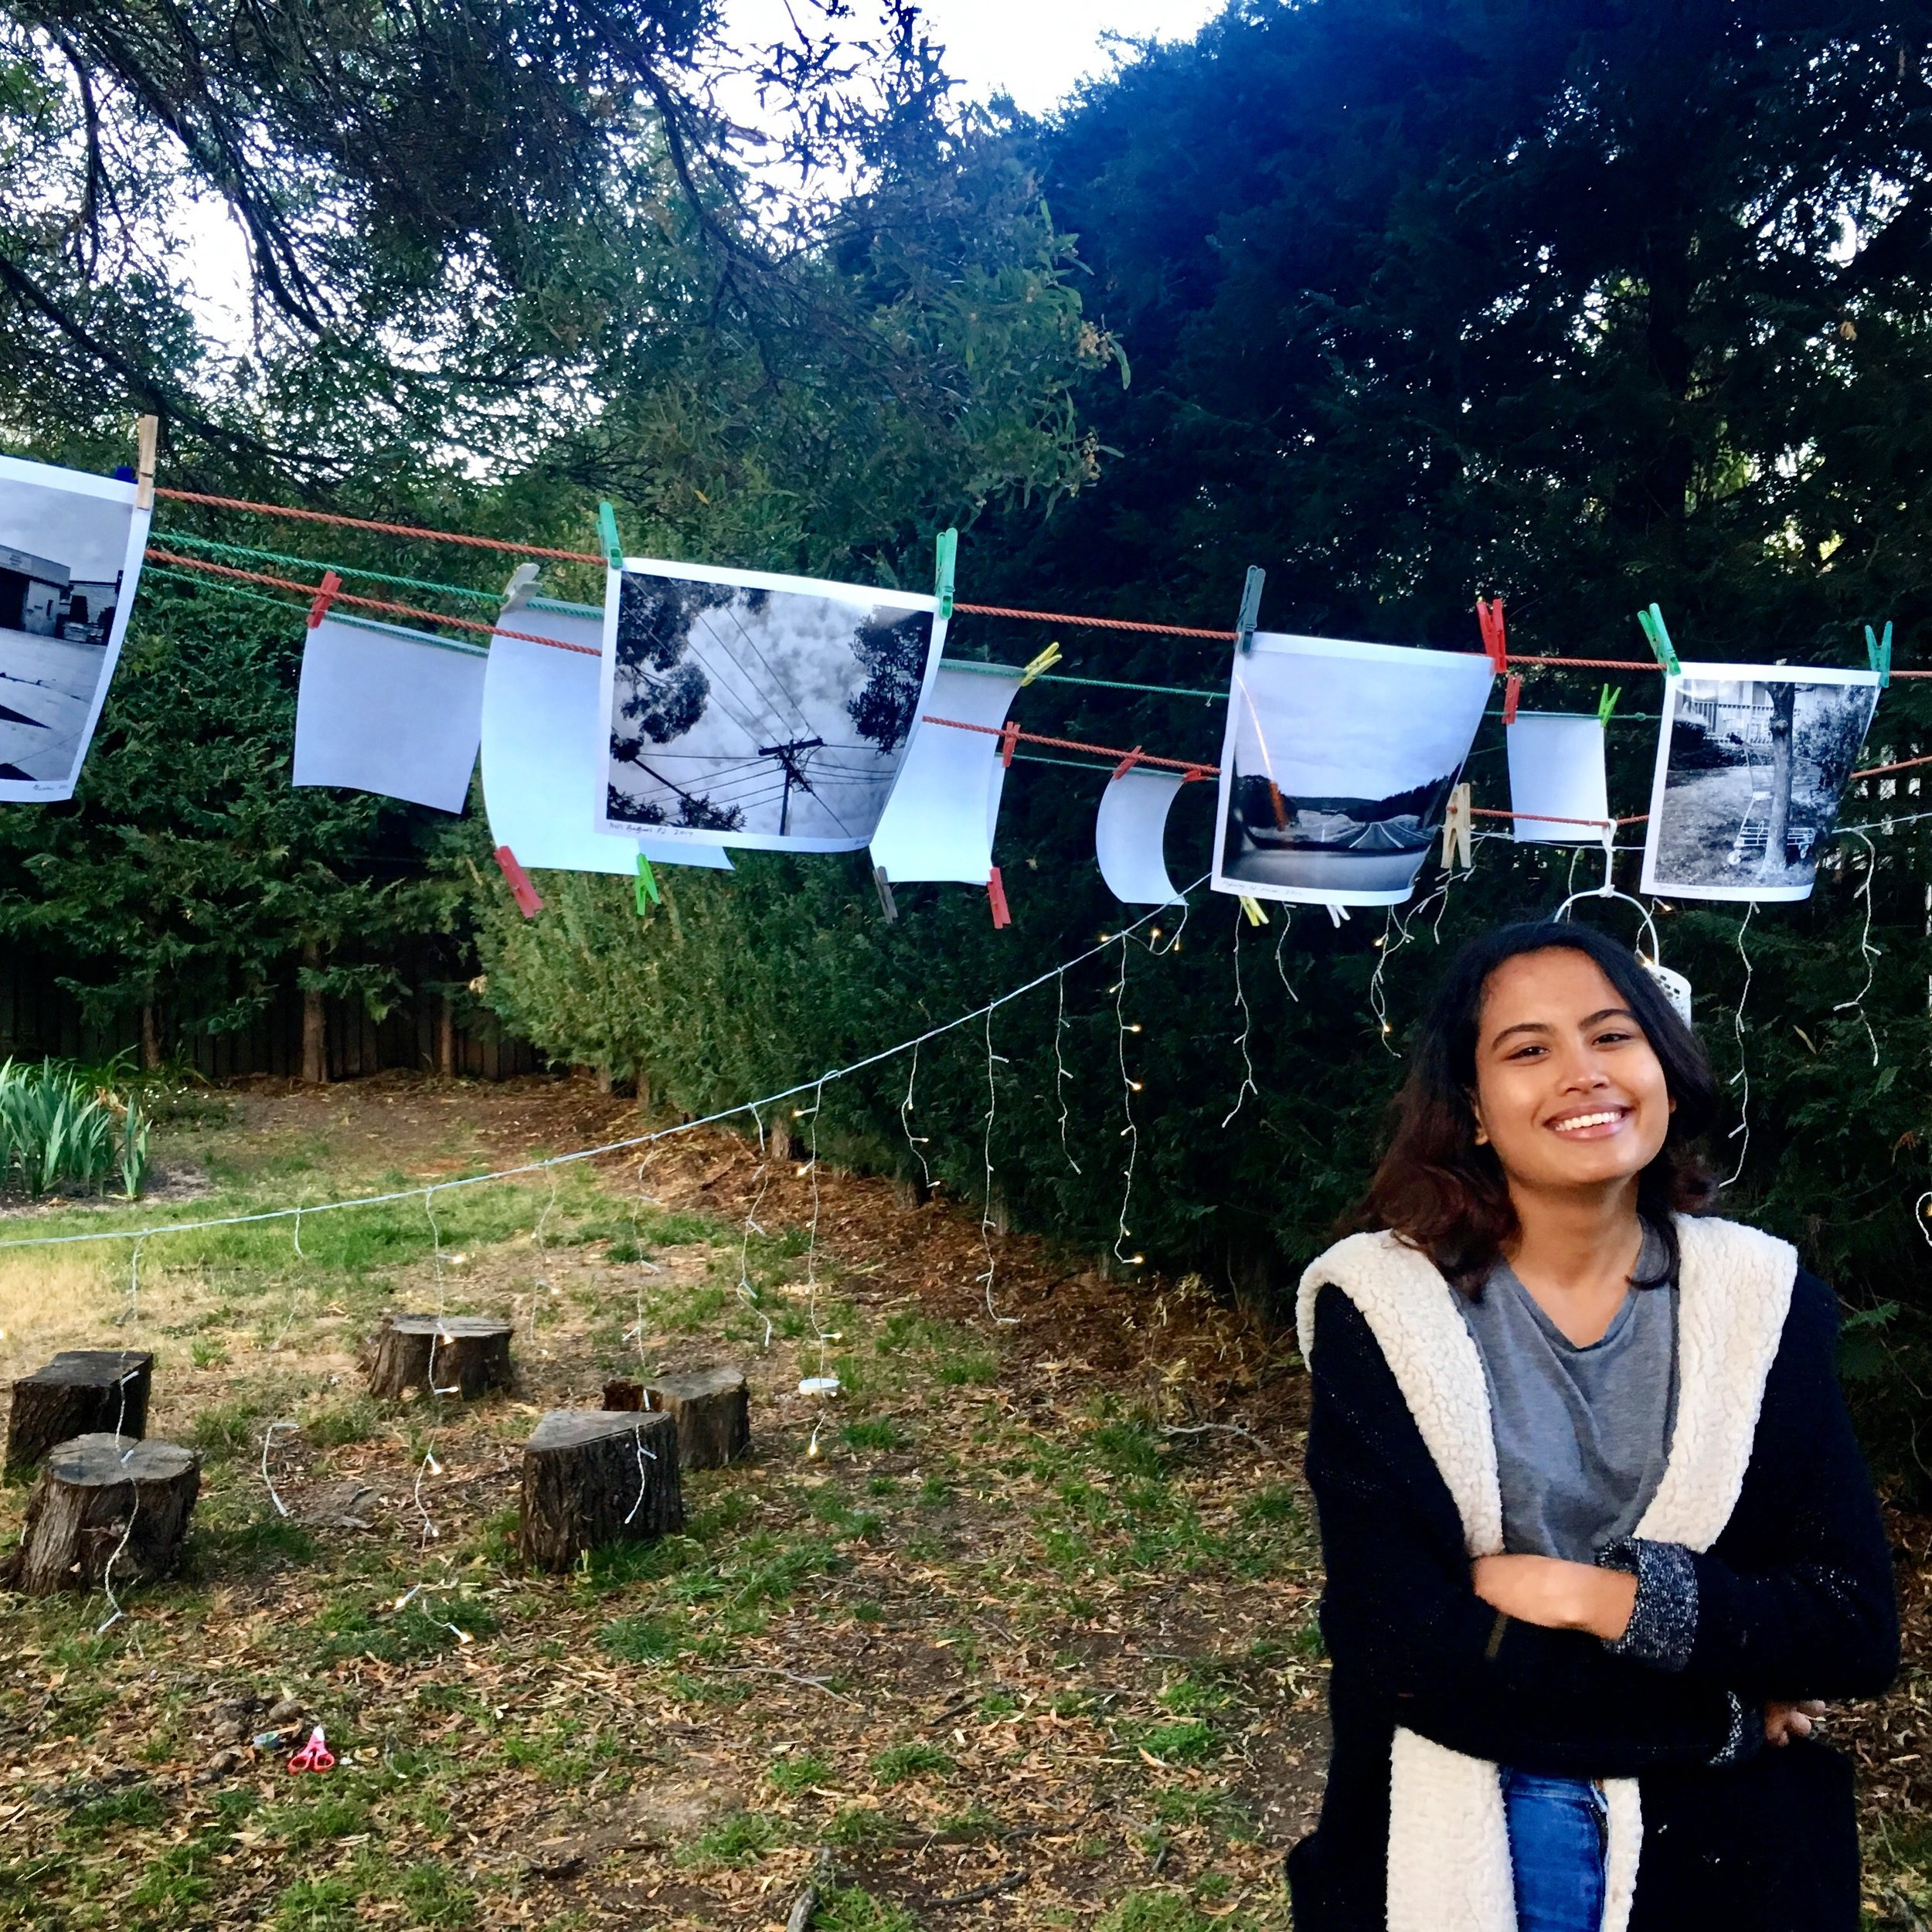 Photographer Aishah Kenton with some of her black and white archival pigment prints, which were on display and sale for $10 each.